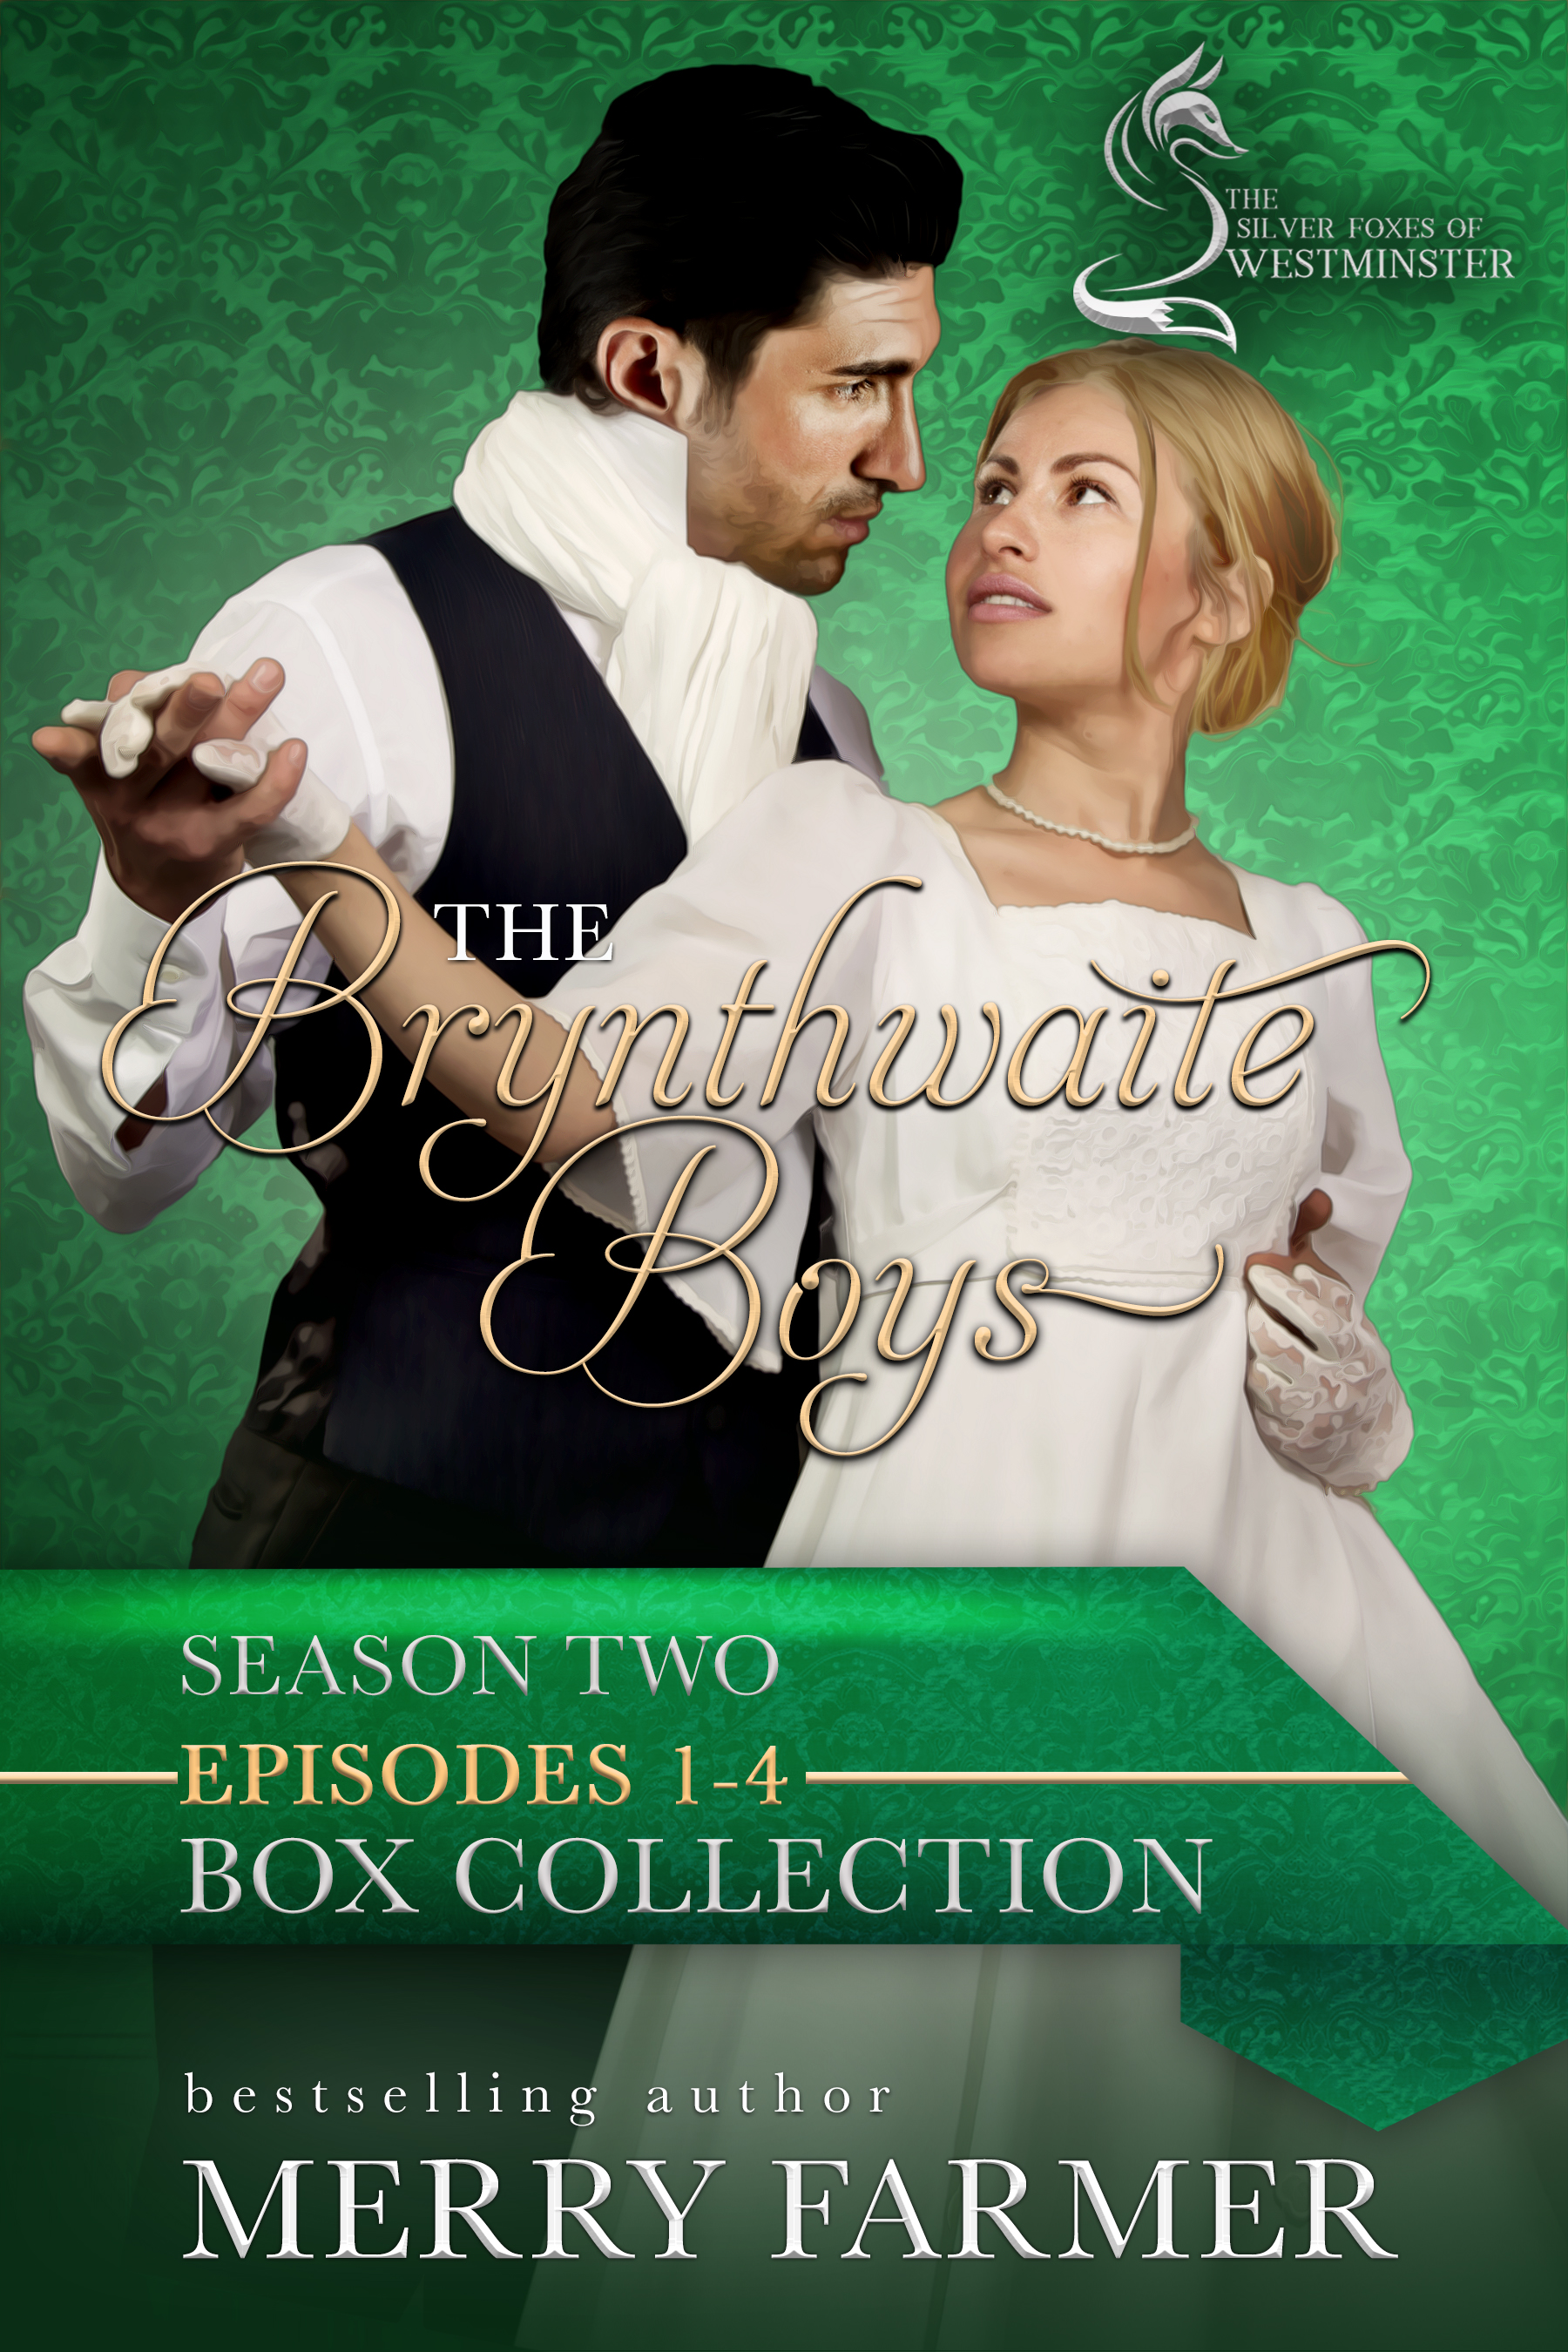 The Brynthwaite BoysSeason Two: Episodes 1-4 - Episode One – A New Day:Jason and Flossie attempt to navigate their deal with the Devil…also known as Lady Elizabeth Dyson, who proves to be more of a challenge than they expected. Lawrence has his hands full as Matty's troubled siblings turn his life upside down. Marshall gets what he's wanted all along, but will he and Alexandra have second thoughts?Episode Two – A String of Consequences:Marshall and Alexandra attempt to navigate their new life, but is their unfortunate patient, Winnie, as innocent as she seems? A chance encounter with a band of Romani leaves Lawrence questioning everything he knows about his past…and could give him the answers he's always craved. Lady E continues her shenanigans, but will her demands drive Jason back to his old ways, or can Flossie redeem him before it's too late?Episode Three – A Happy Discovery:Jason and Flossie are overjoyed when they receive the good news they've been hoping for, but how will Lady E feel about it? How will Alexandra cope when she receives the same news, and will it destroy her relationship with Marshall? Lawrence's anxiety about money take a backseat as news of a murder reaches him and Matty.Episode Four – A Parting of Ways:The Christmas season brings more worry than joy as Marshall and Jason prepare to depart for London. Flossie receives a letter that may mean more trouble in the New Year. Alexandra too receives a letter that could change everything, including her heart. Matty and Lawrence discover, to their horror, that they aren't as safe from the past as they hoped they were.PLEASE BE ADVISED: Some episodes contain steamy, steamy content!